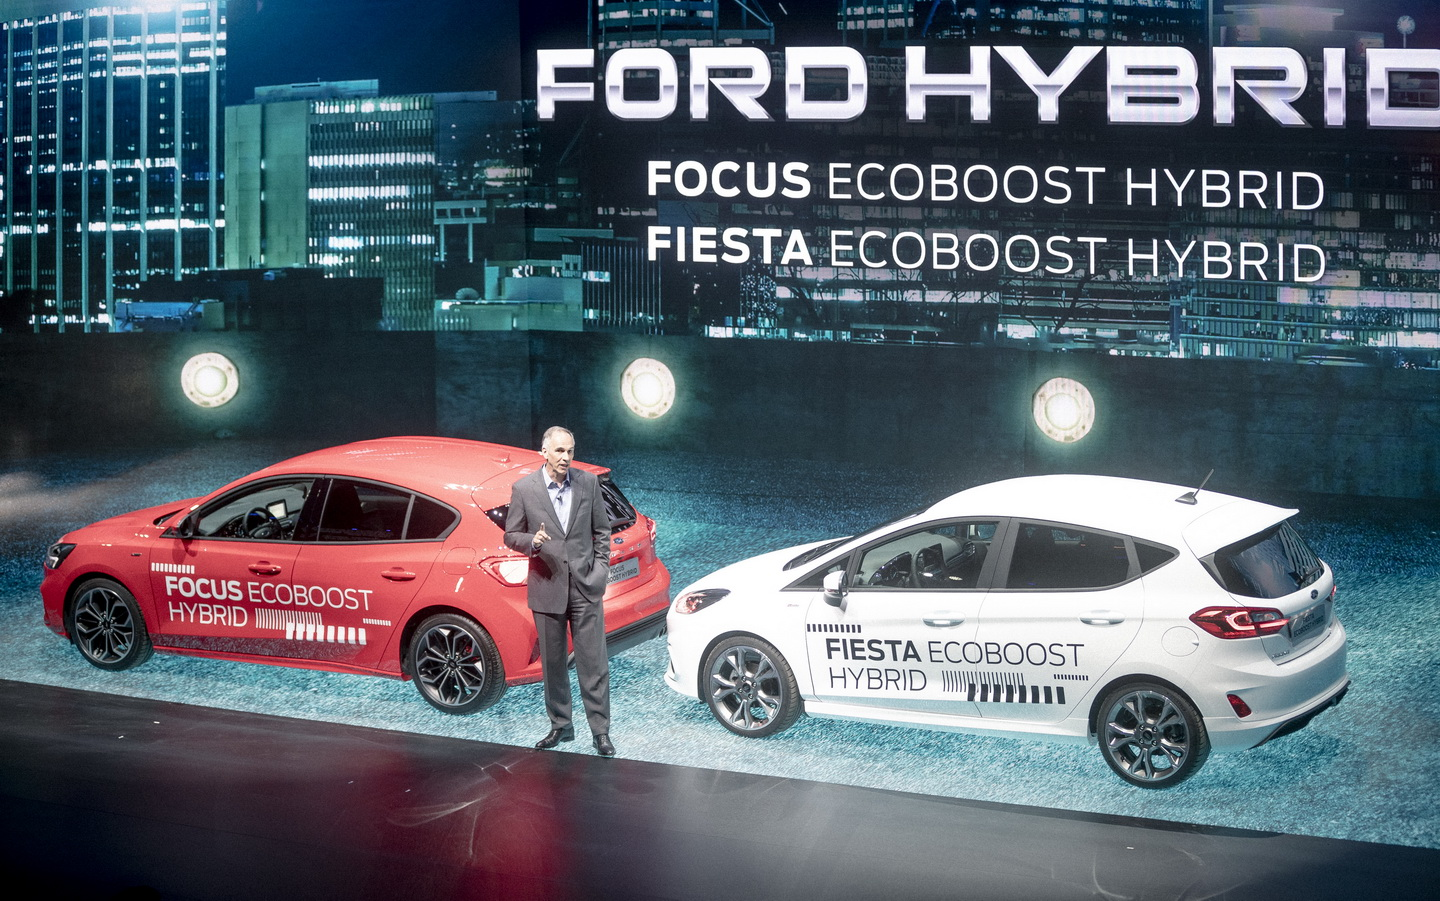 Ford Go Further 2019 event hybrid cars 44